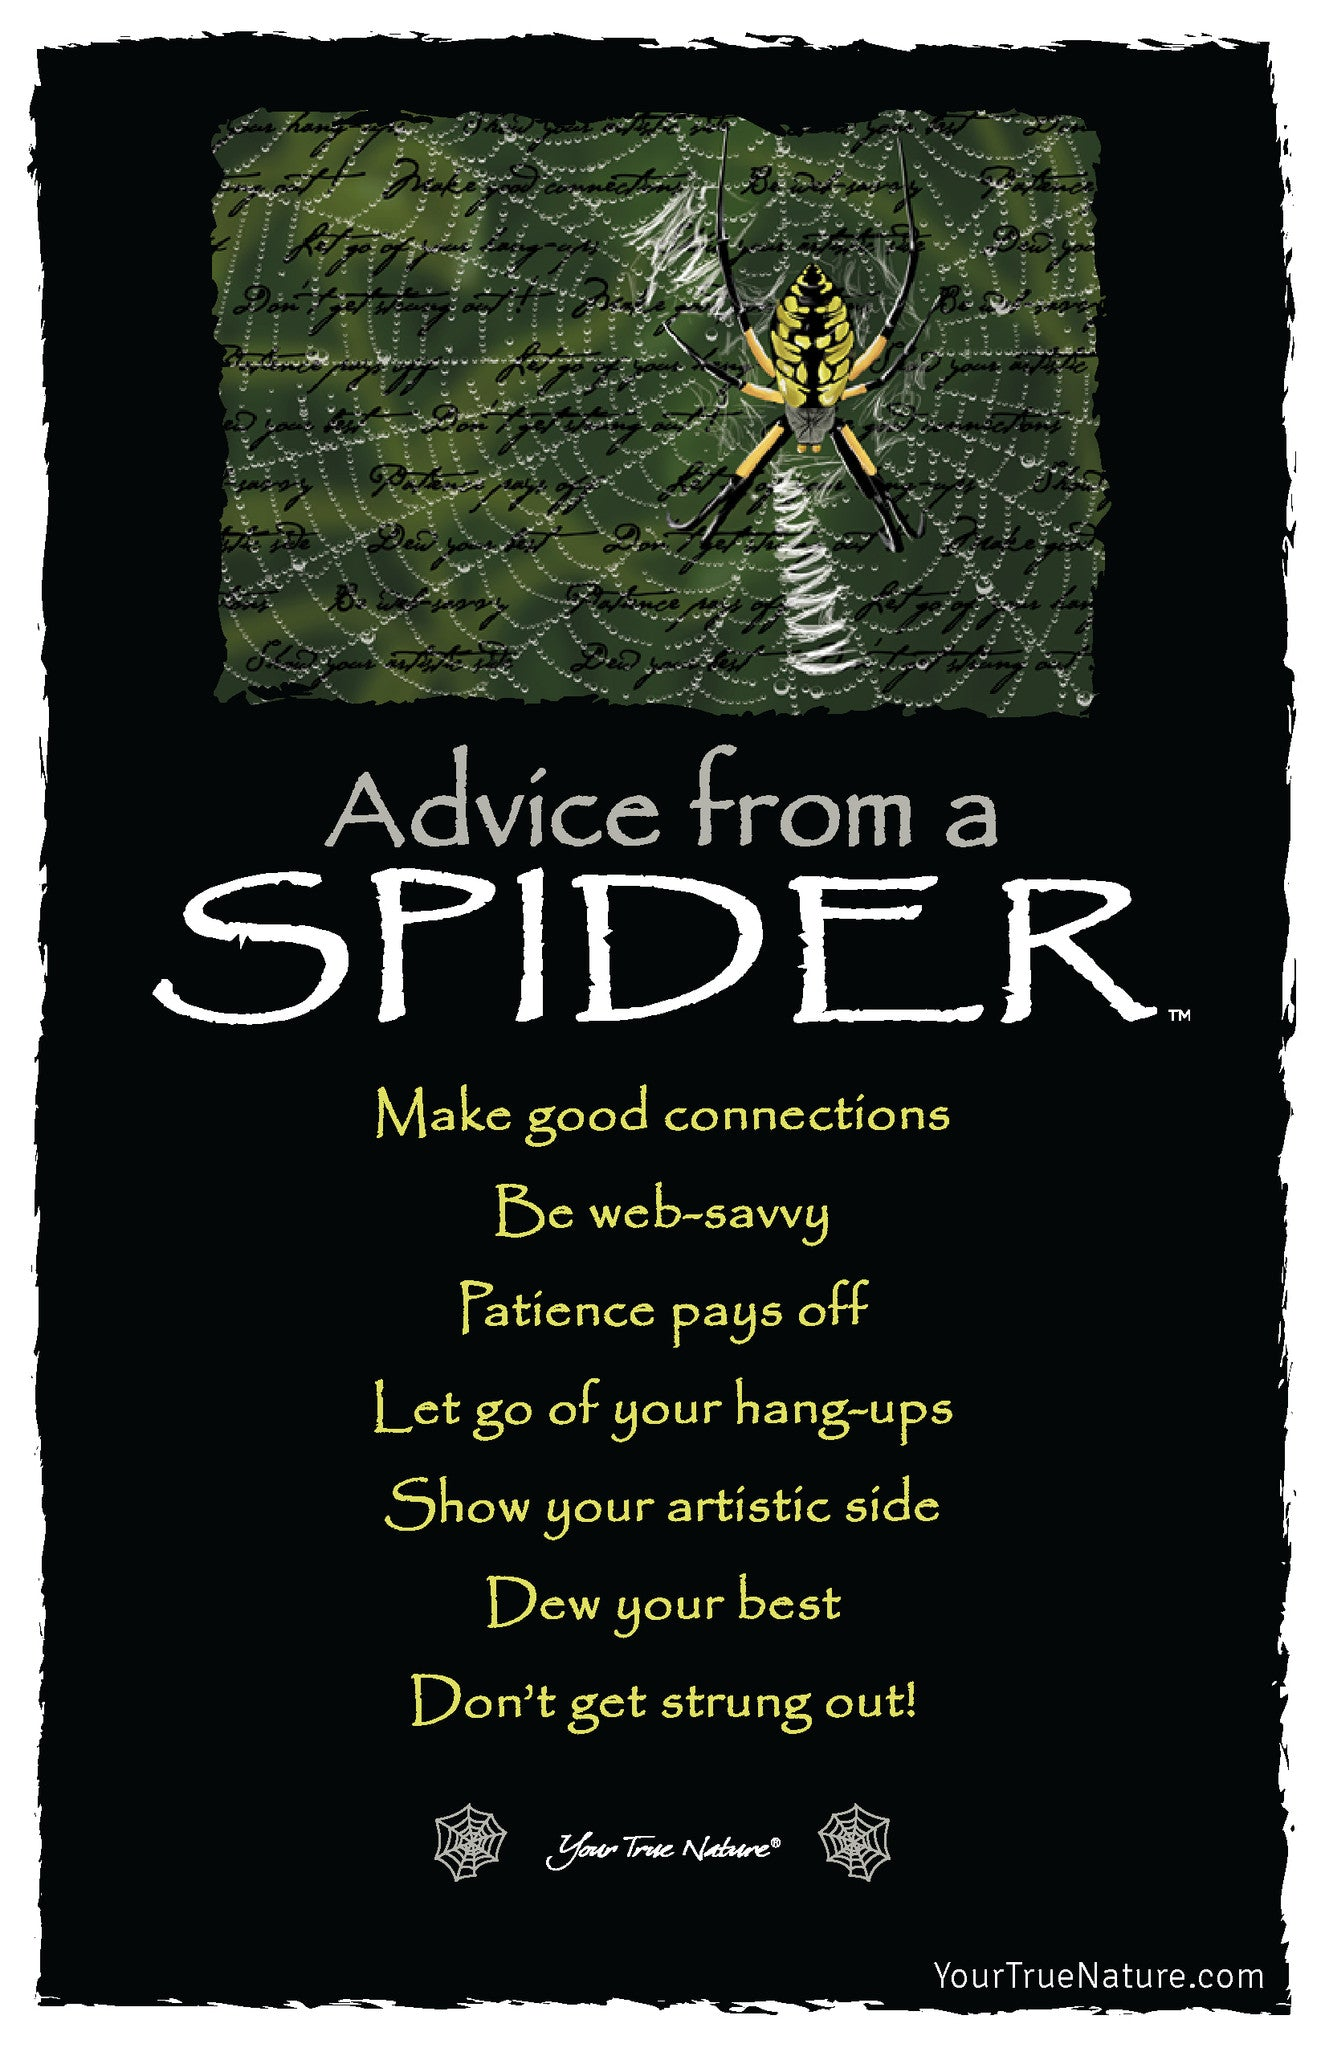 Advice from a Cactus Frameable Art Card – Your True Nature, Inc